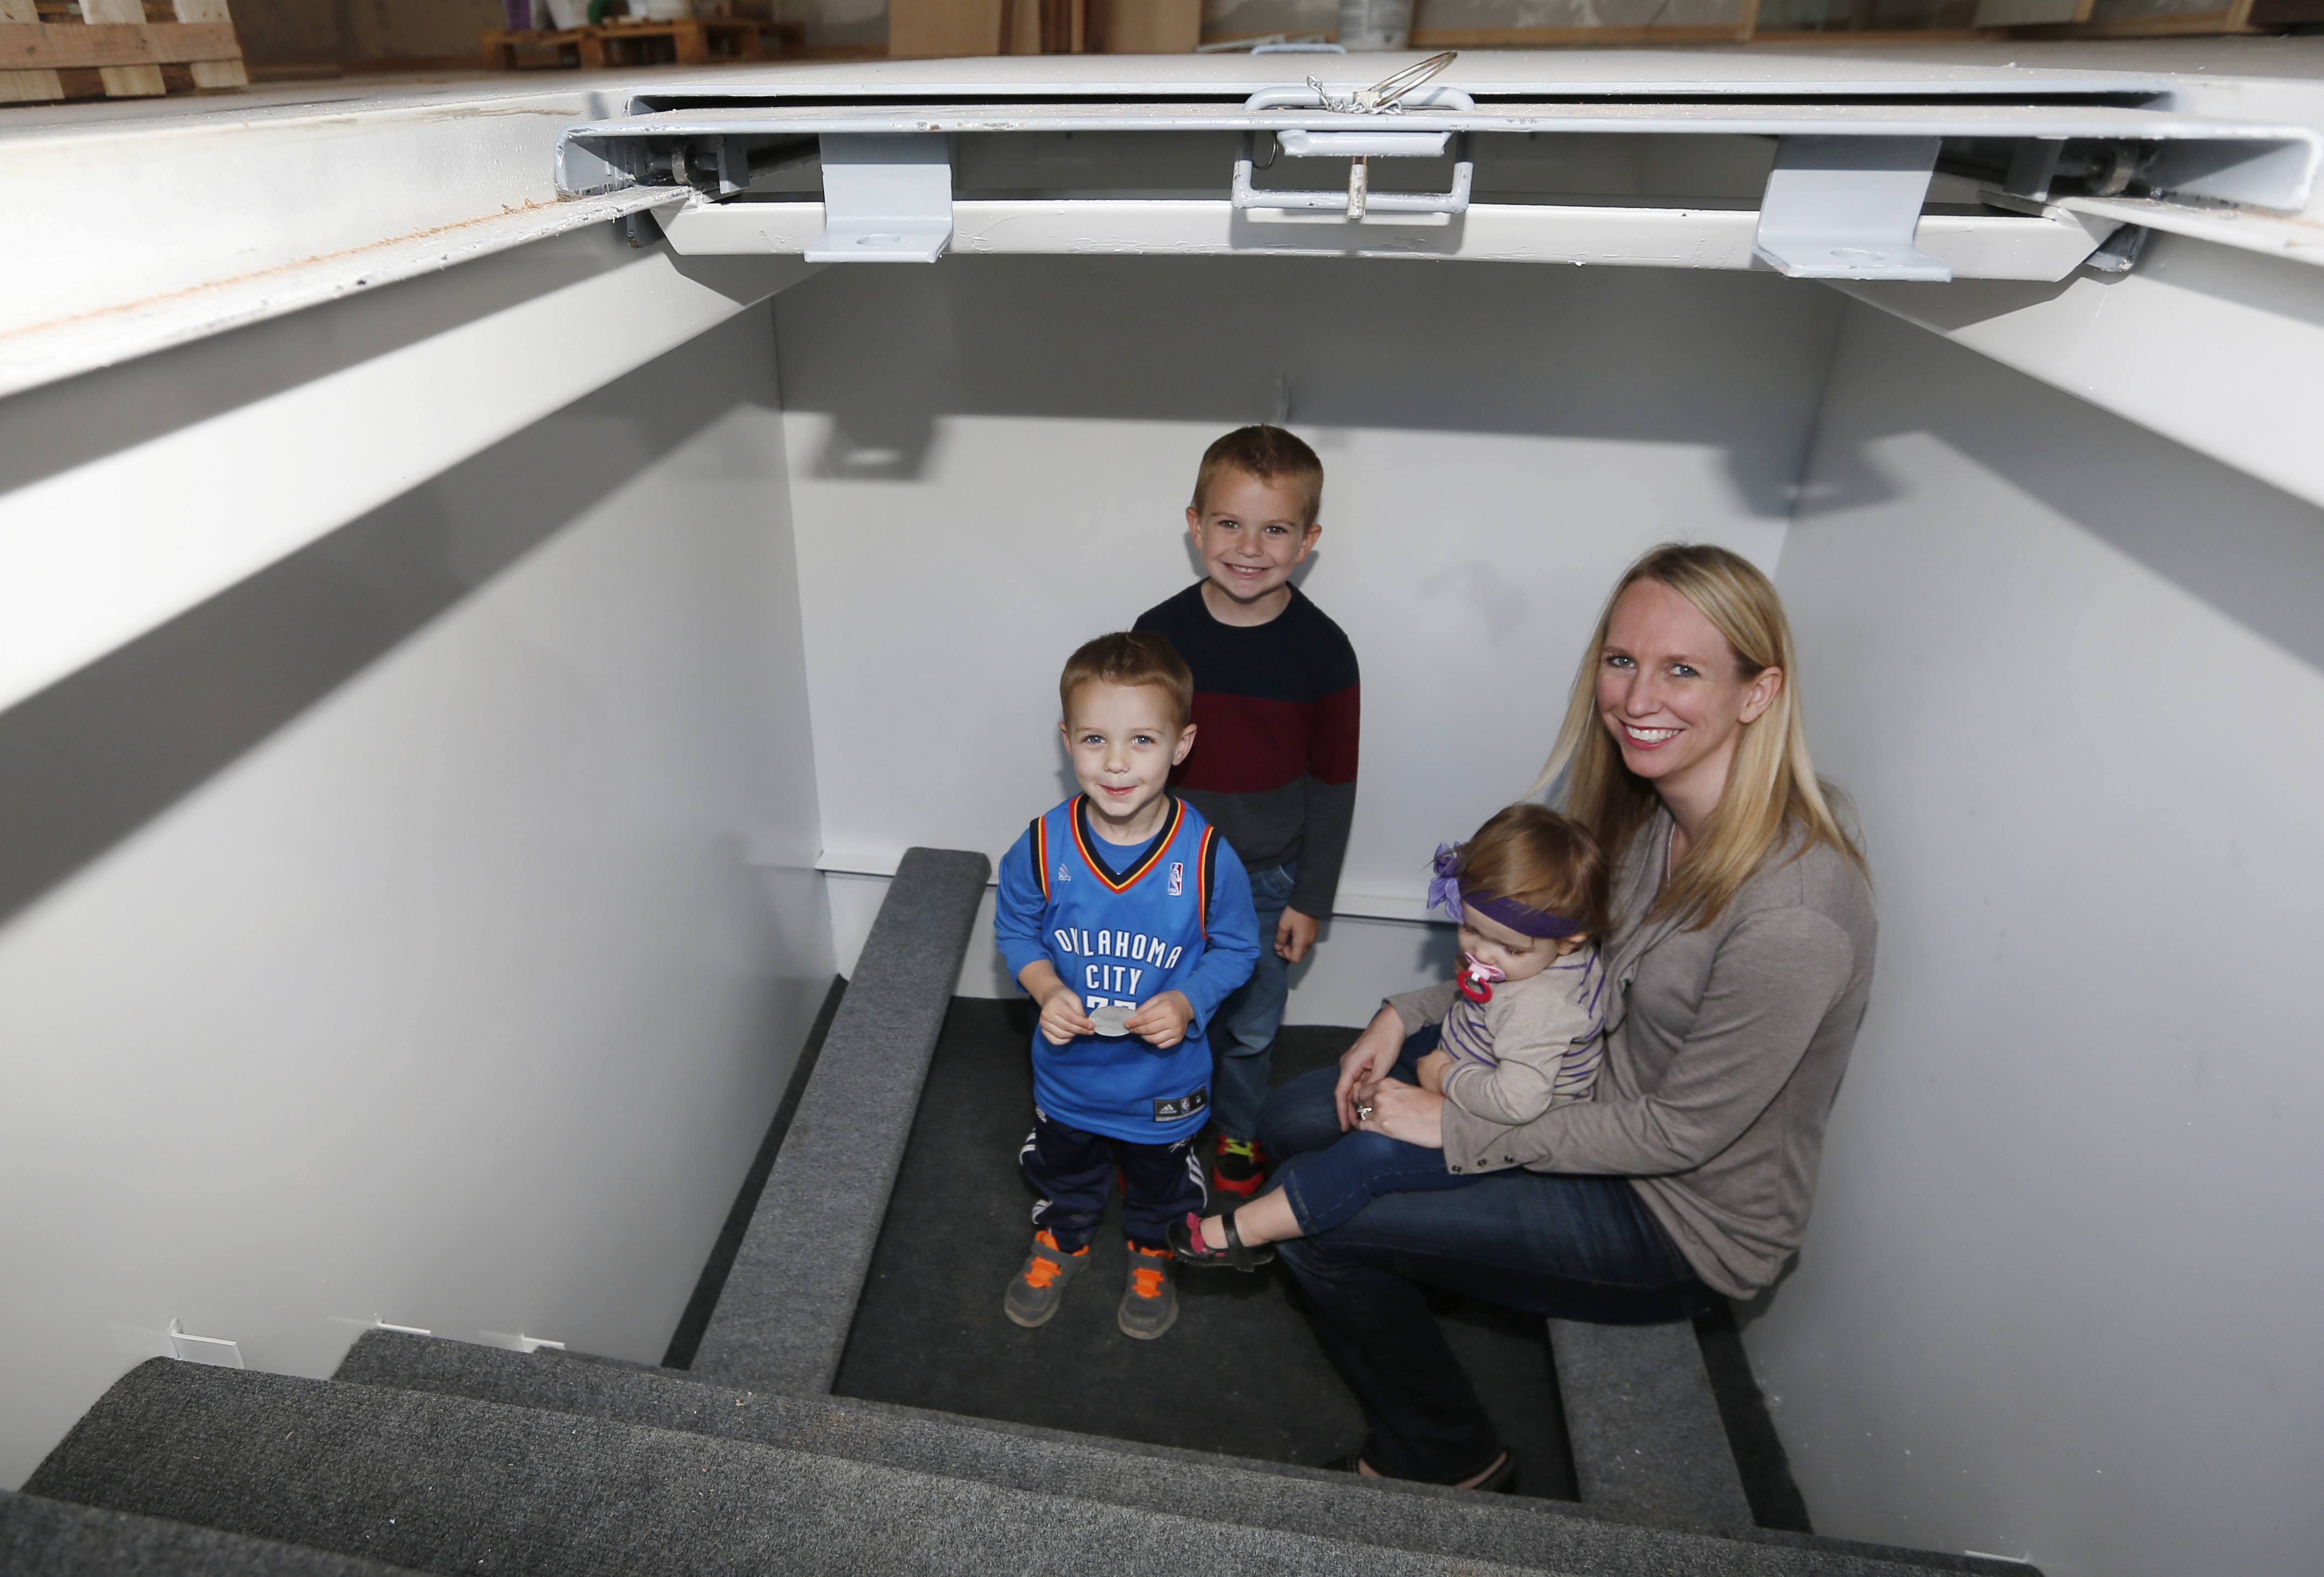 Tessa Beaulieu poses for a photo in the storm shelter in her new construction home with her children, from left, Hudson, Dawson and Sloane, in Edmond, Okla. Last year's deadly tornadoes, which killed more than 30 people, scared Oklahomans in a way that previous storms had not, moving them to add tornado shelters or reinforced safe rooms to their homes.